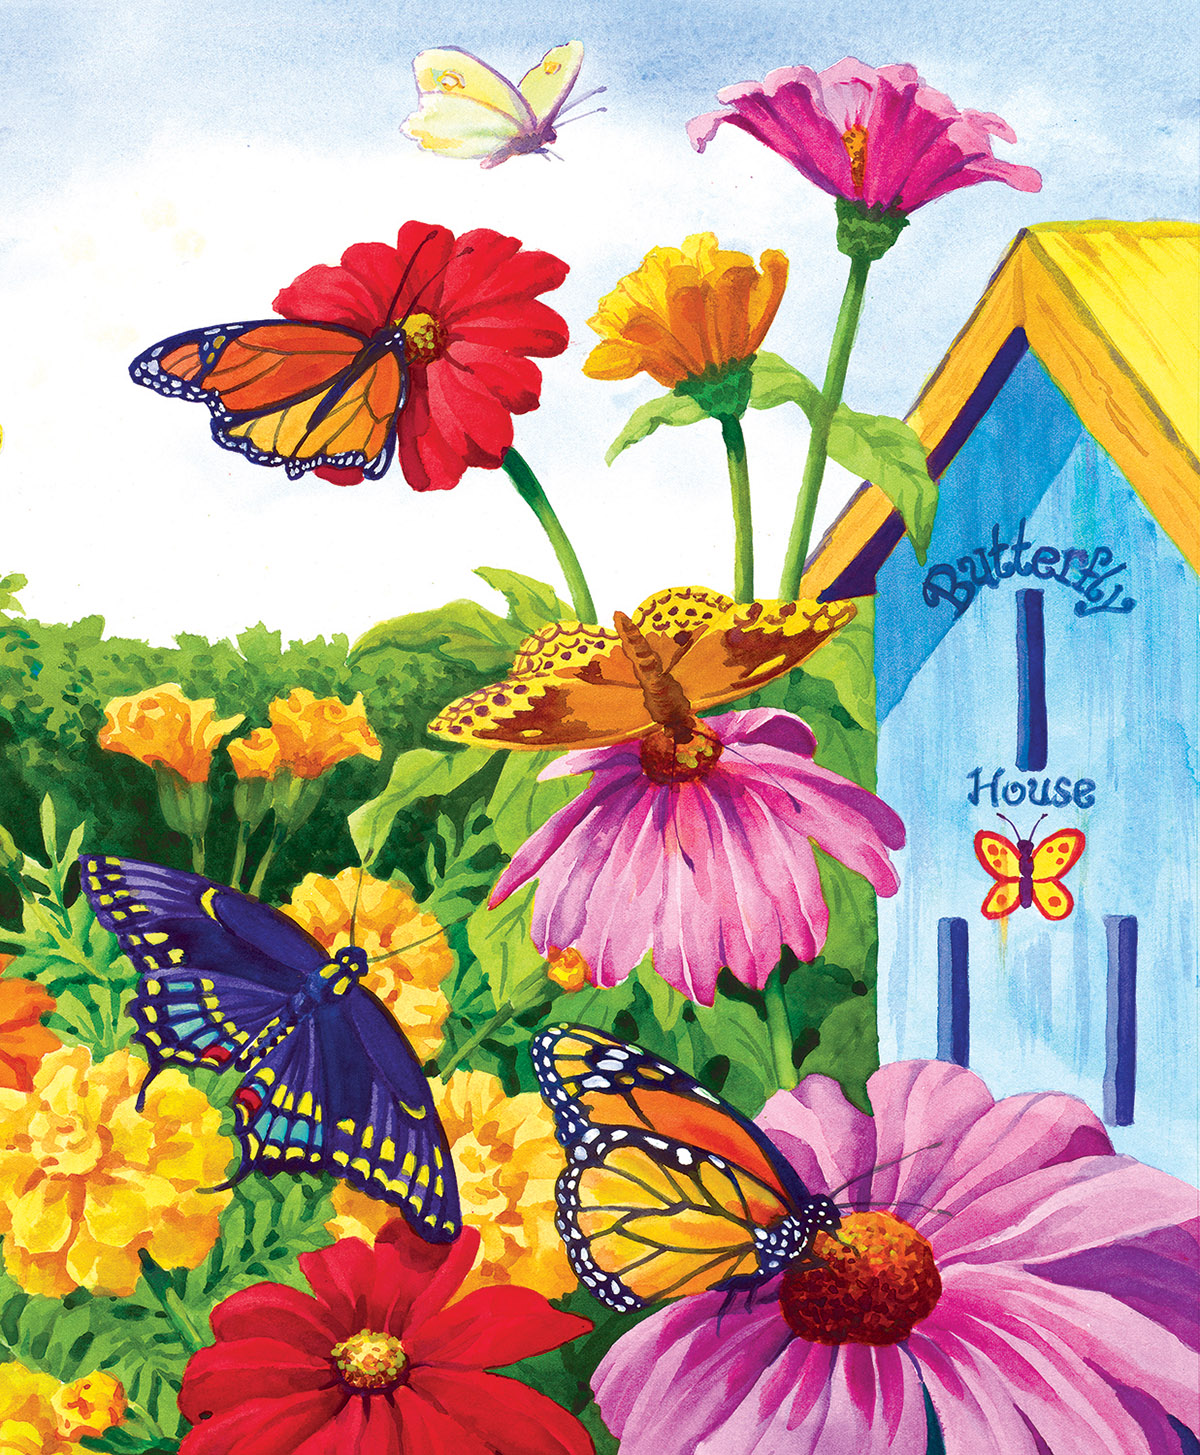 sunsout-nancy-wernersbach-butterfly-homecoming-1000-teile-puzzle-sunsout-62935